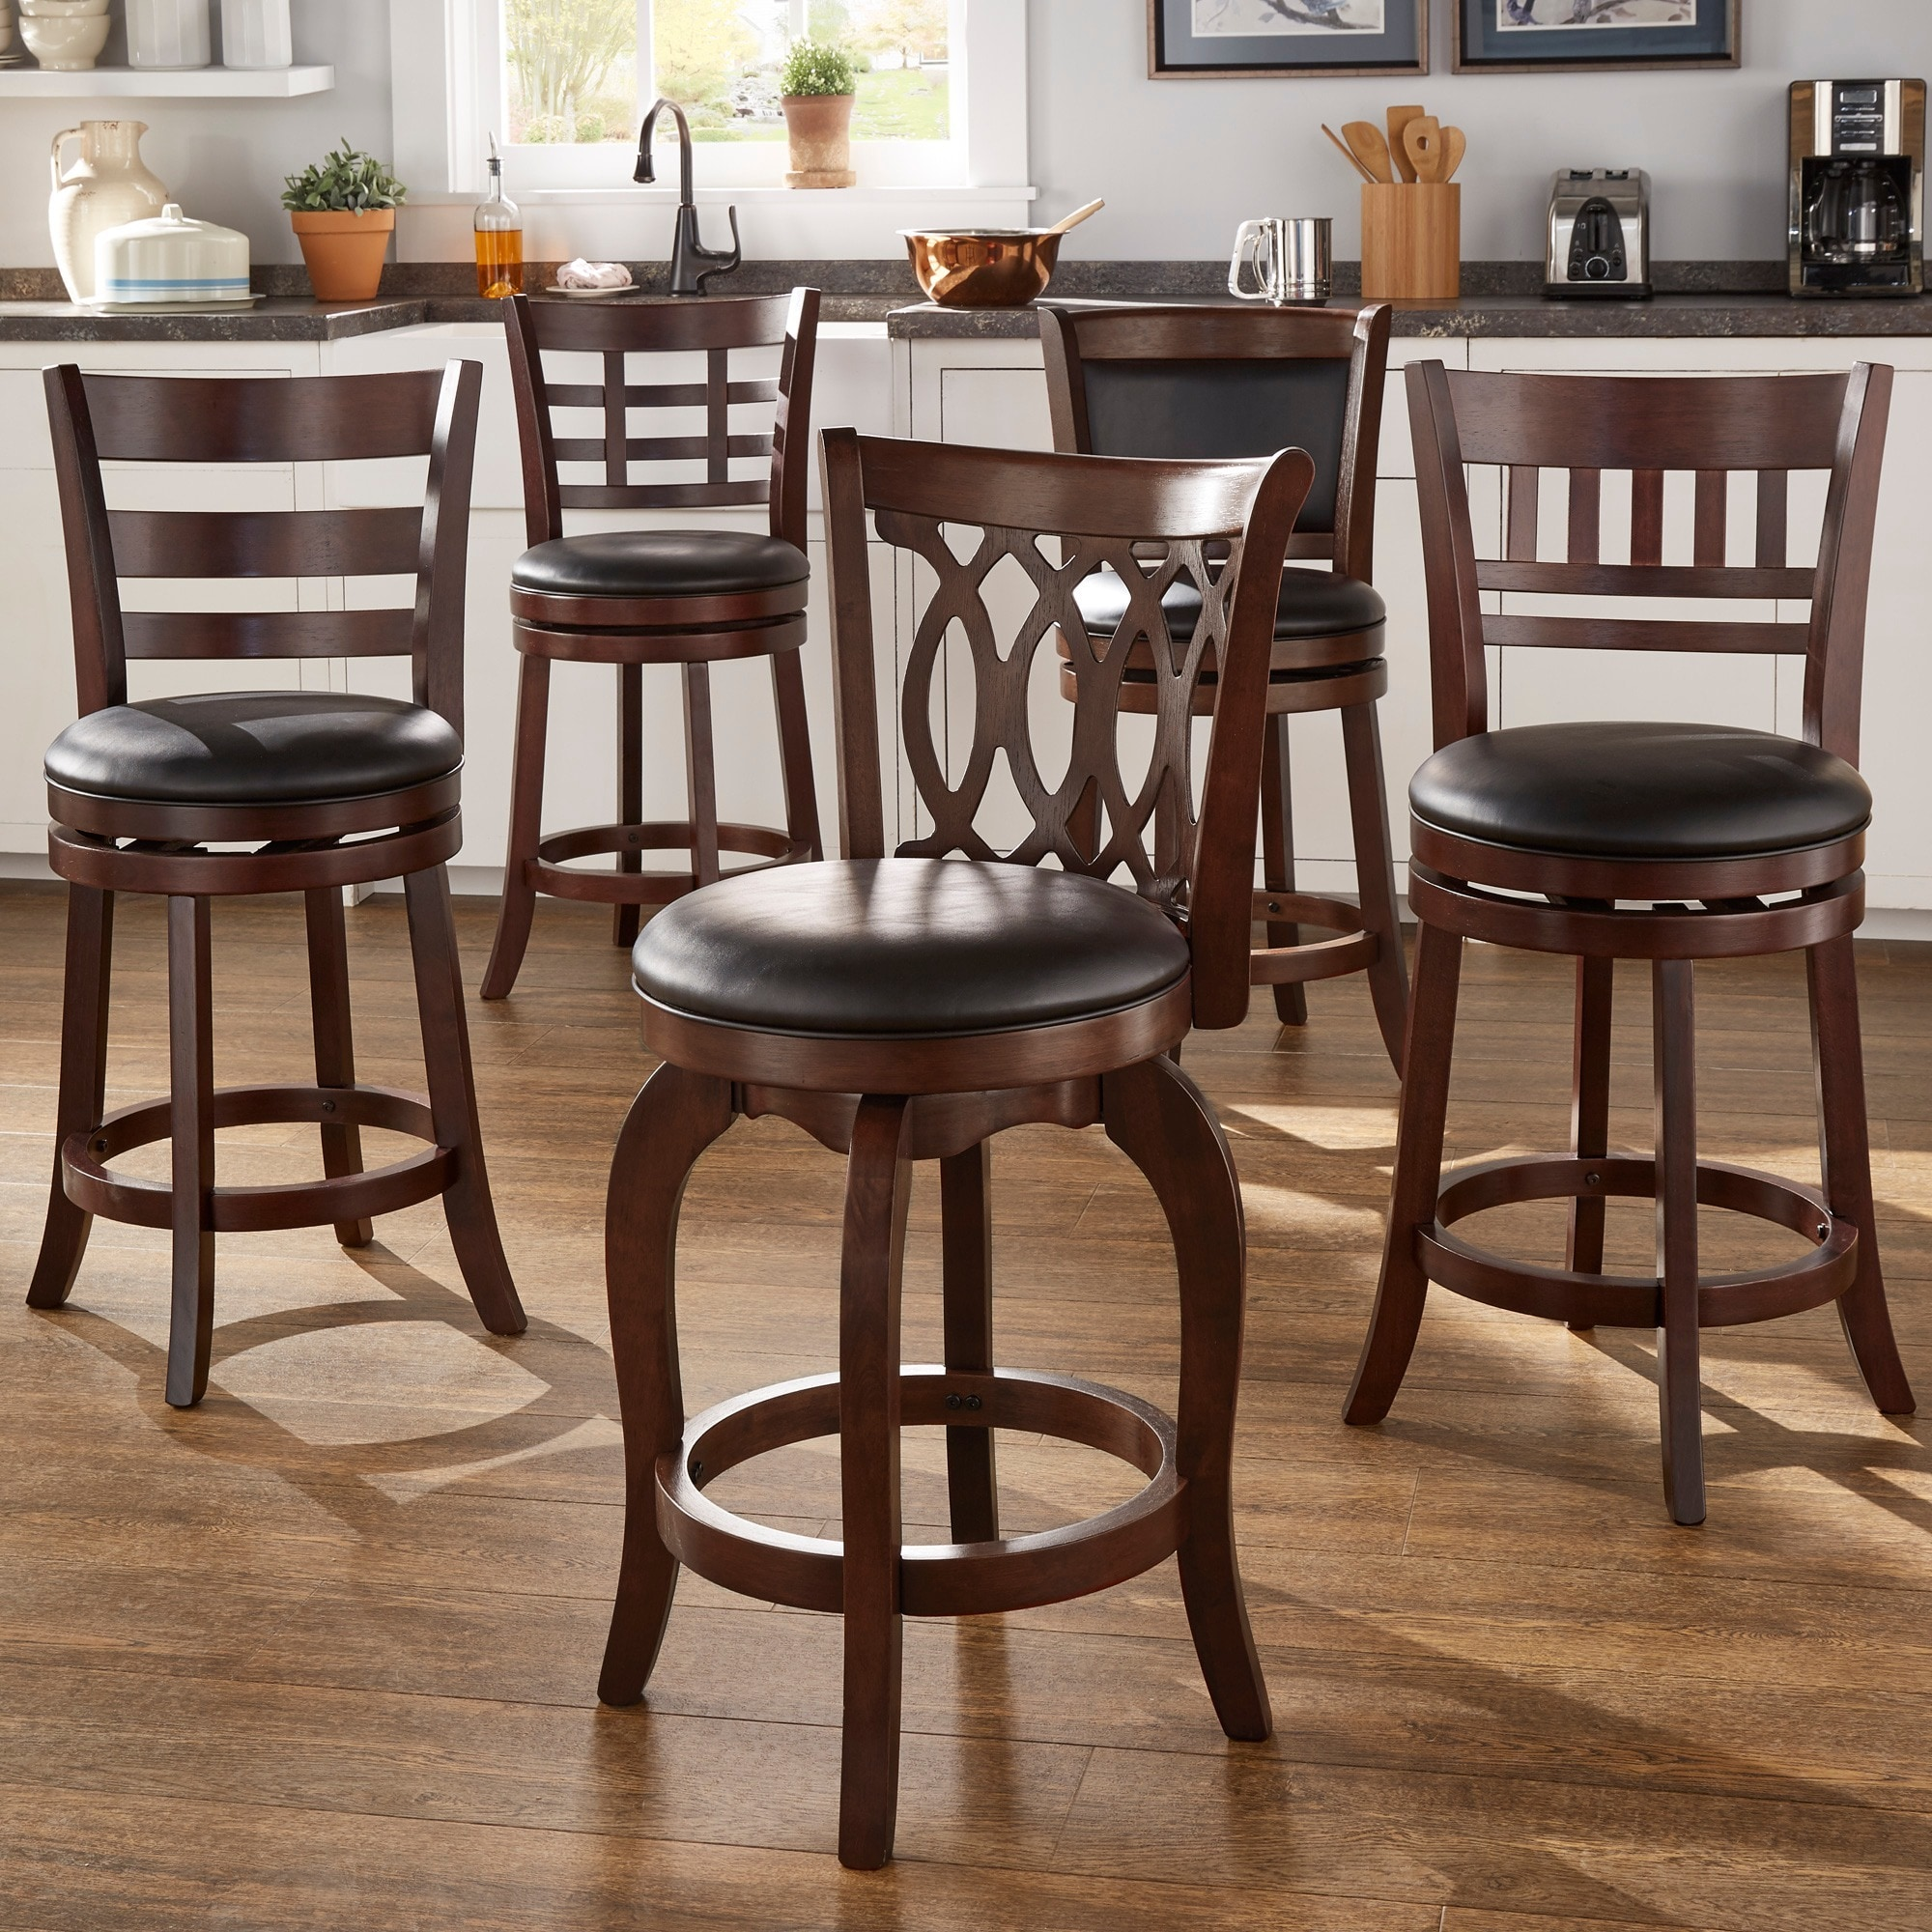 Swivel Bar Stools 24 In Cherry Finish Wood Frame Faux